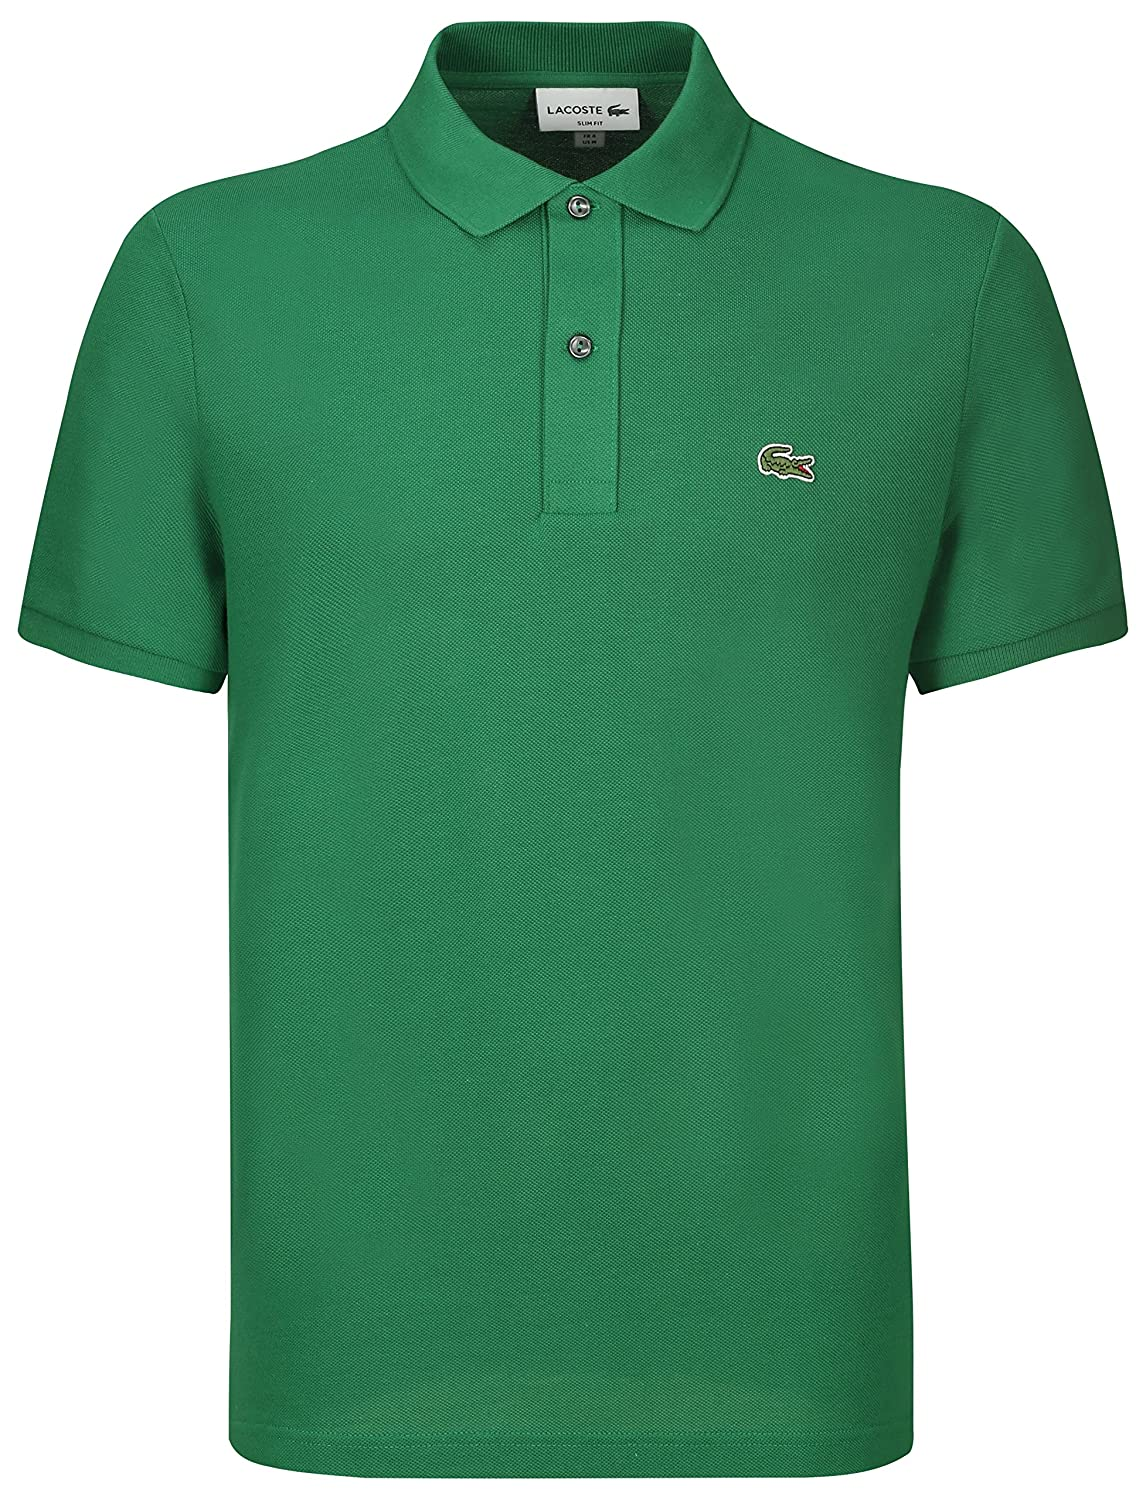 Vert IV Lacoste - PH4012 - Polo - Homme